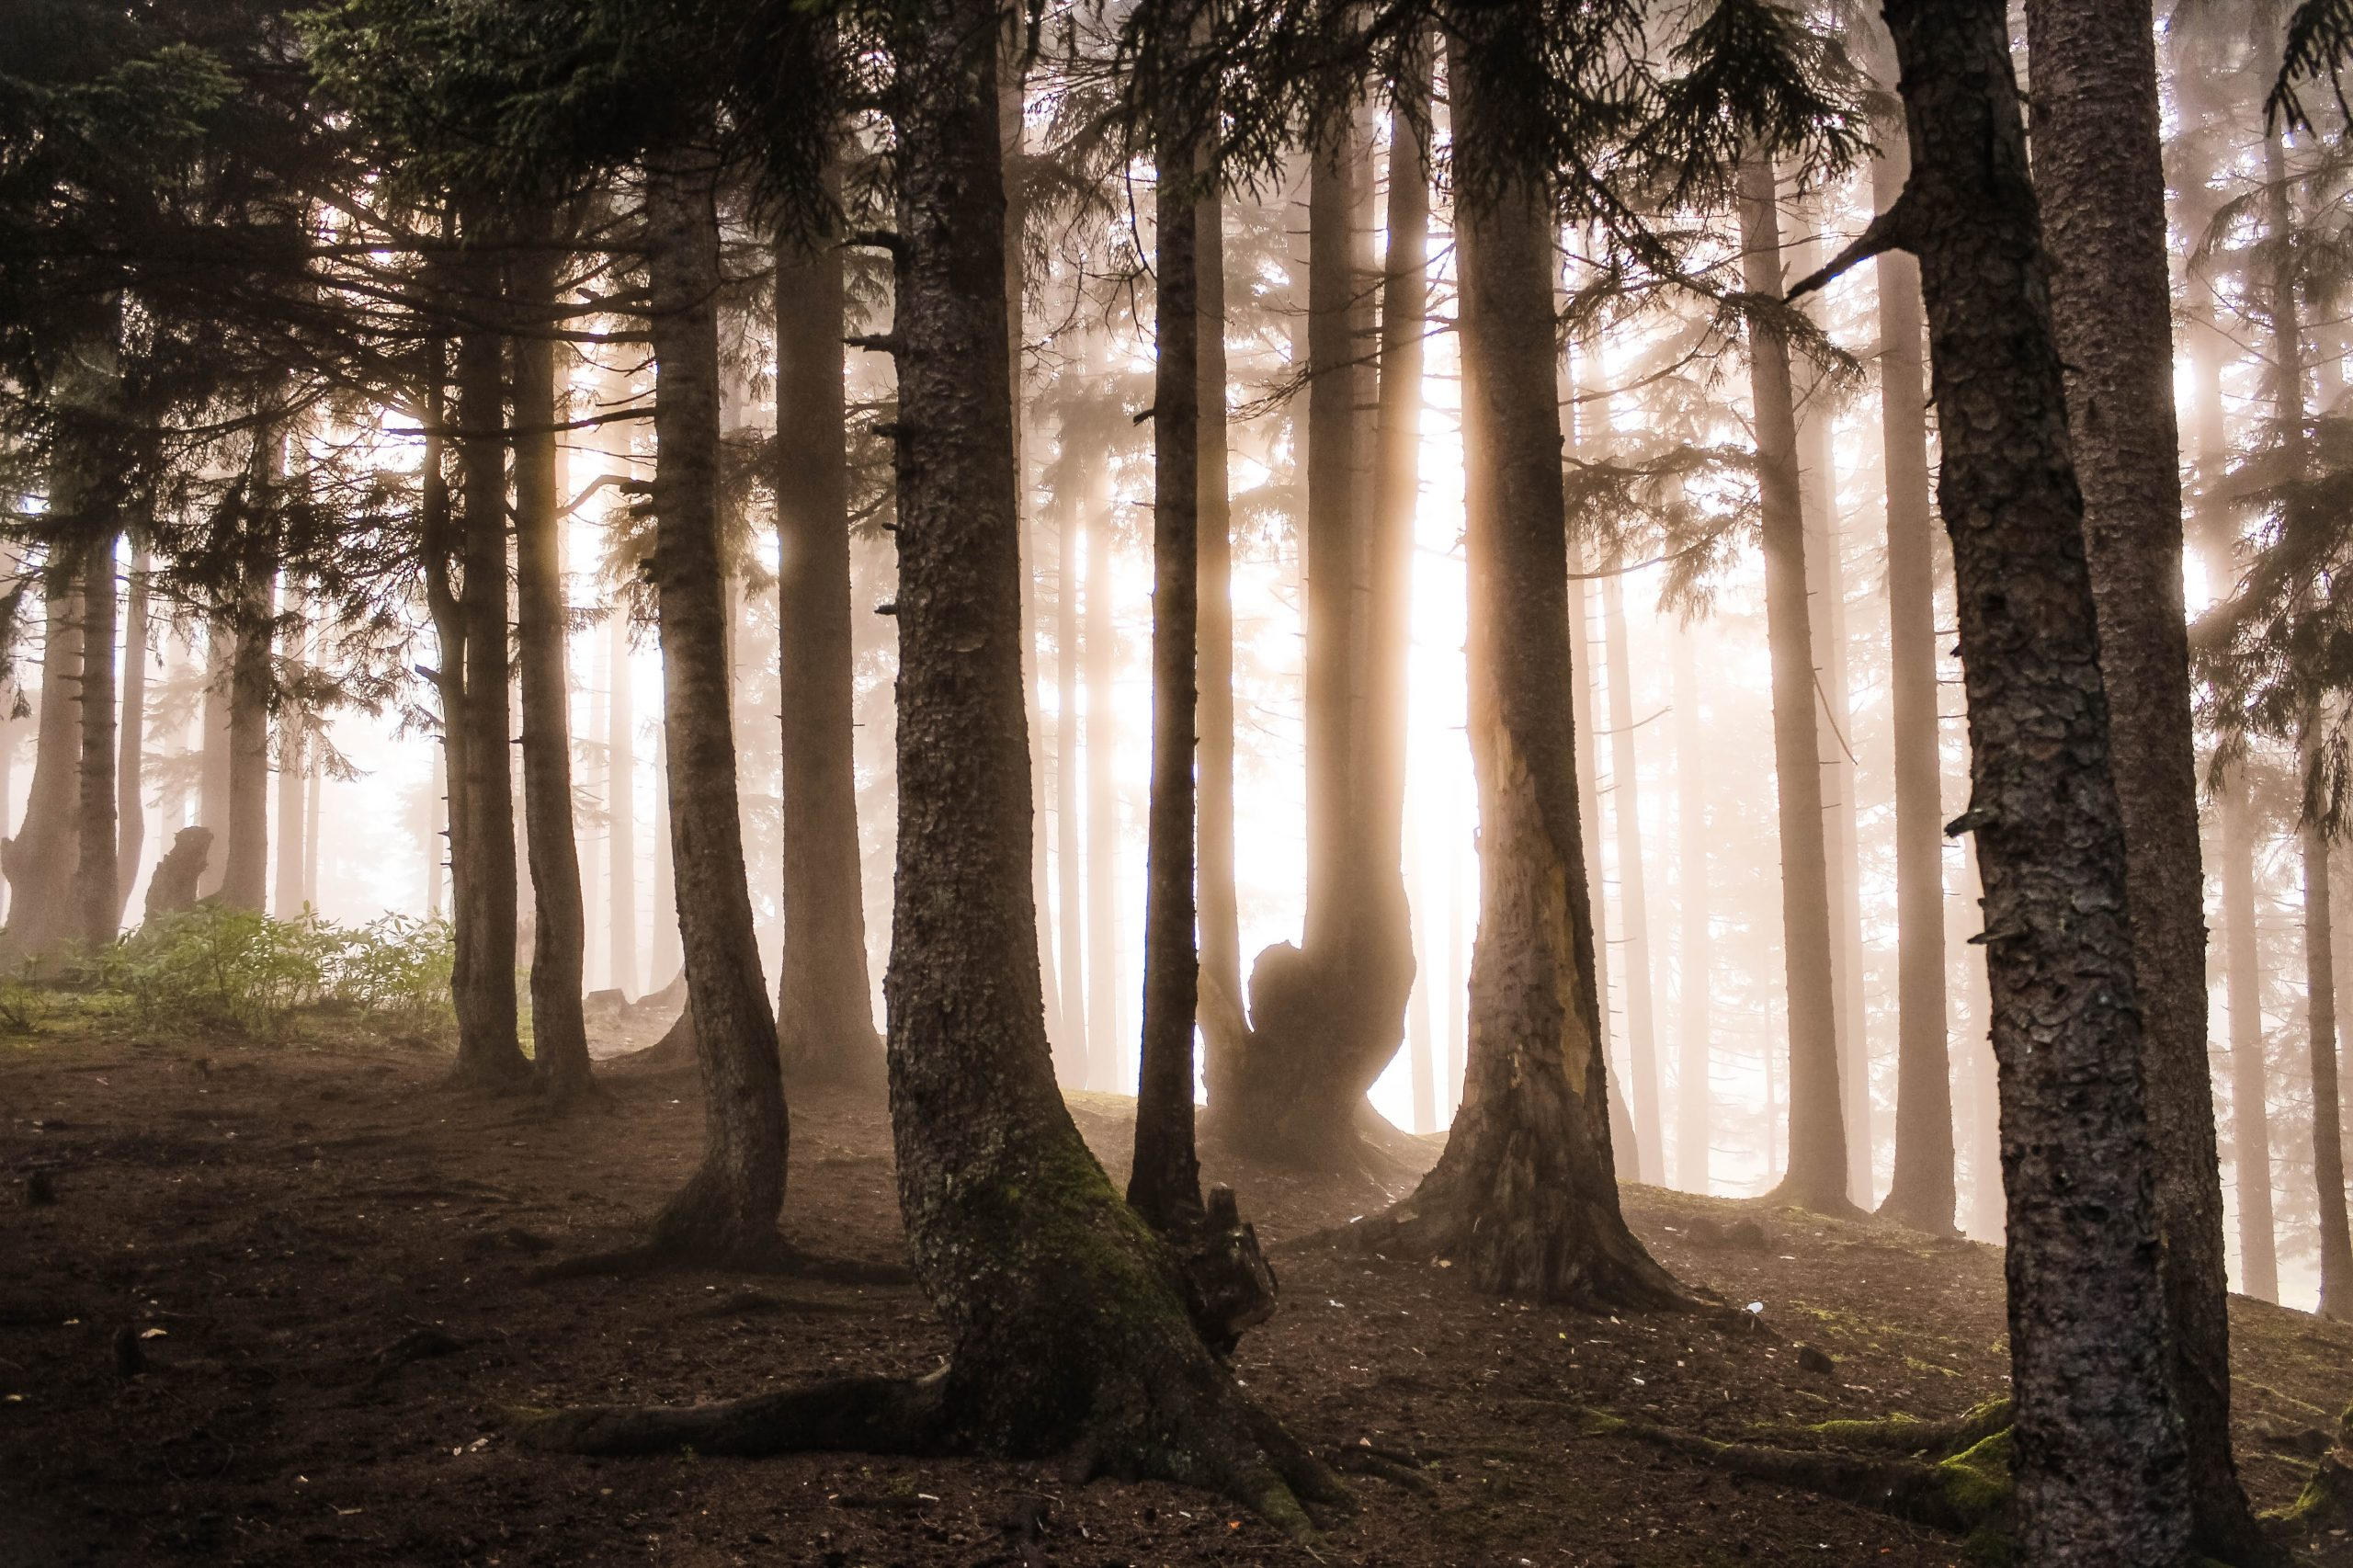 Tree silhouettes in the foggy forest